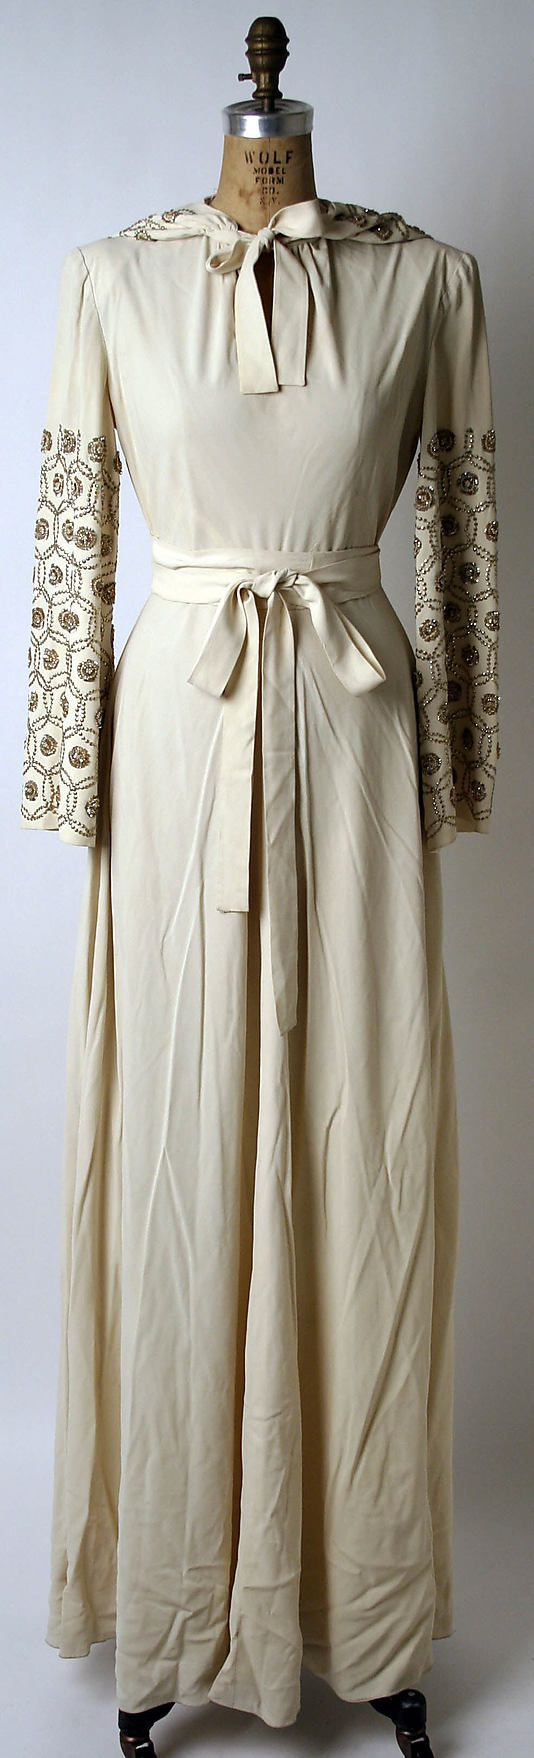 34 best images about norman norell on pinterest silk for Wedding dresses norman ok